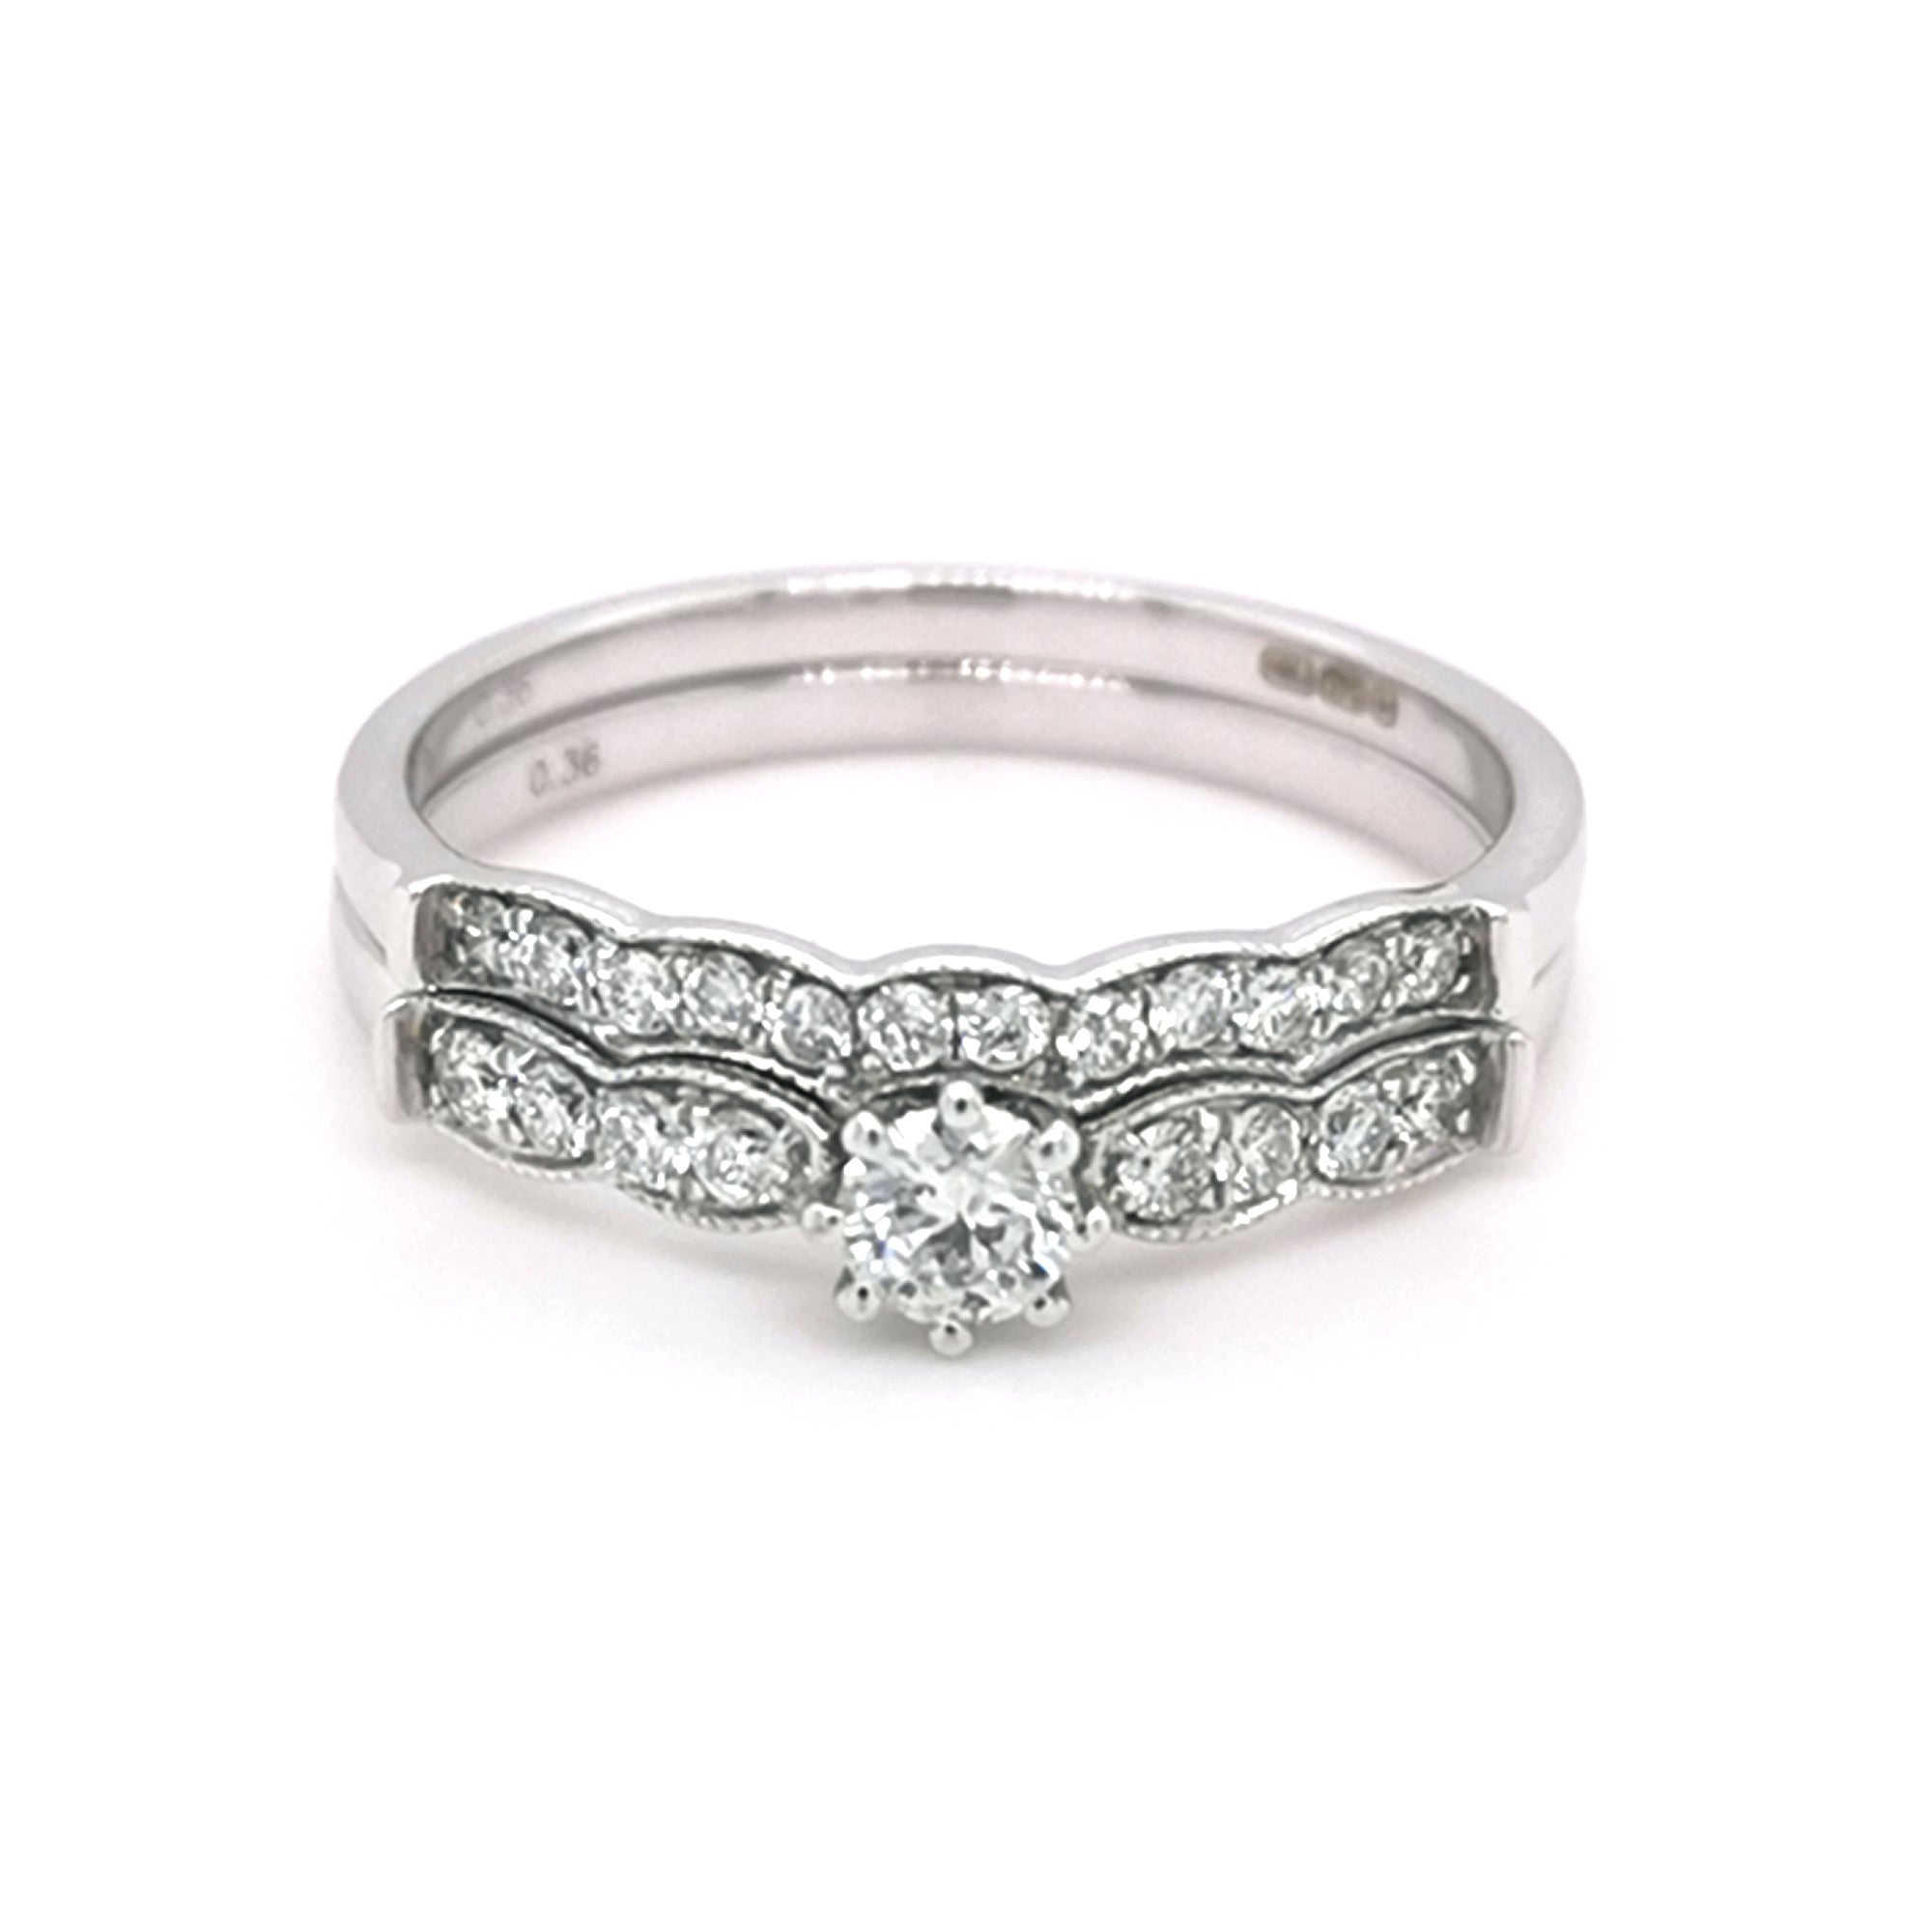 9ct White Gold Vintage Style Diamond Bridal Set 0.32cts - Sonny's Jewellers